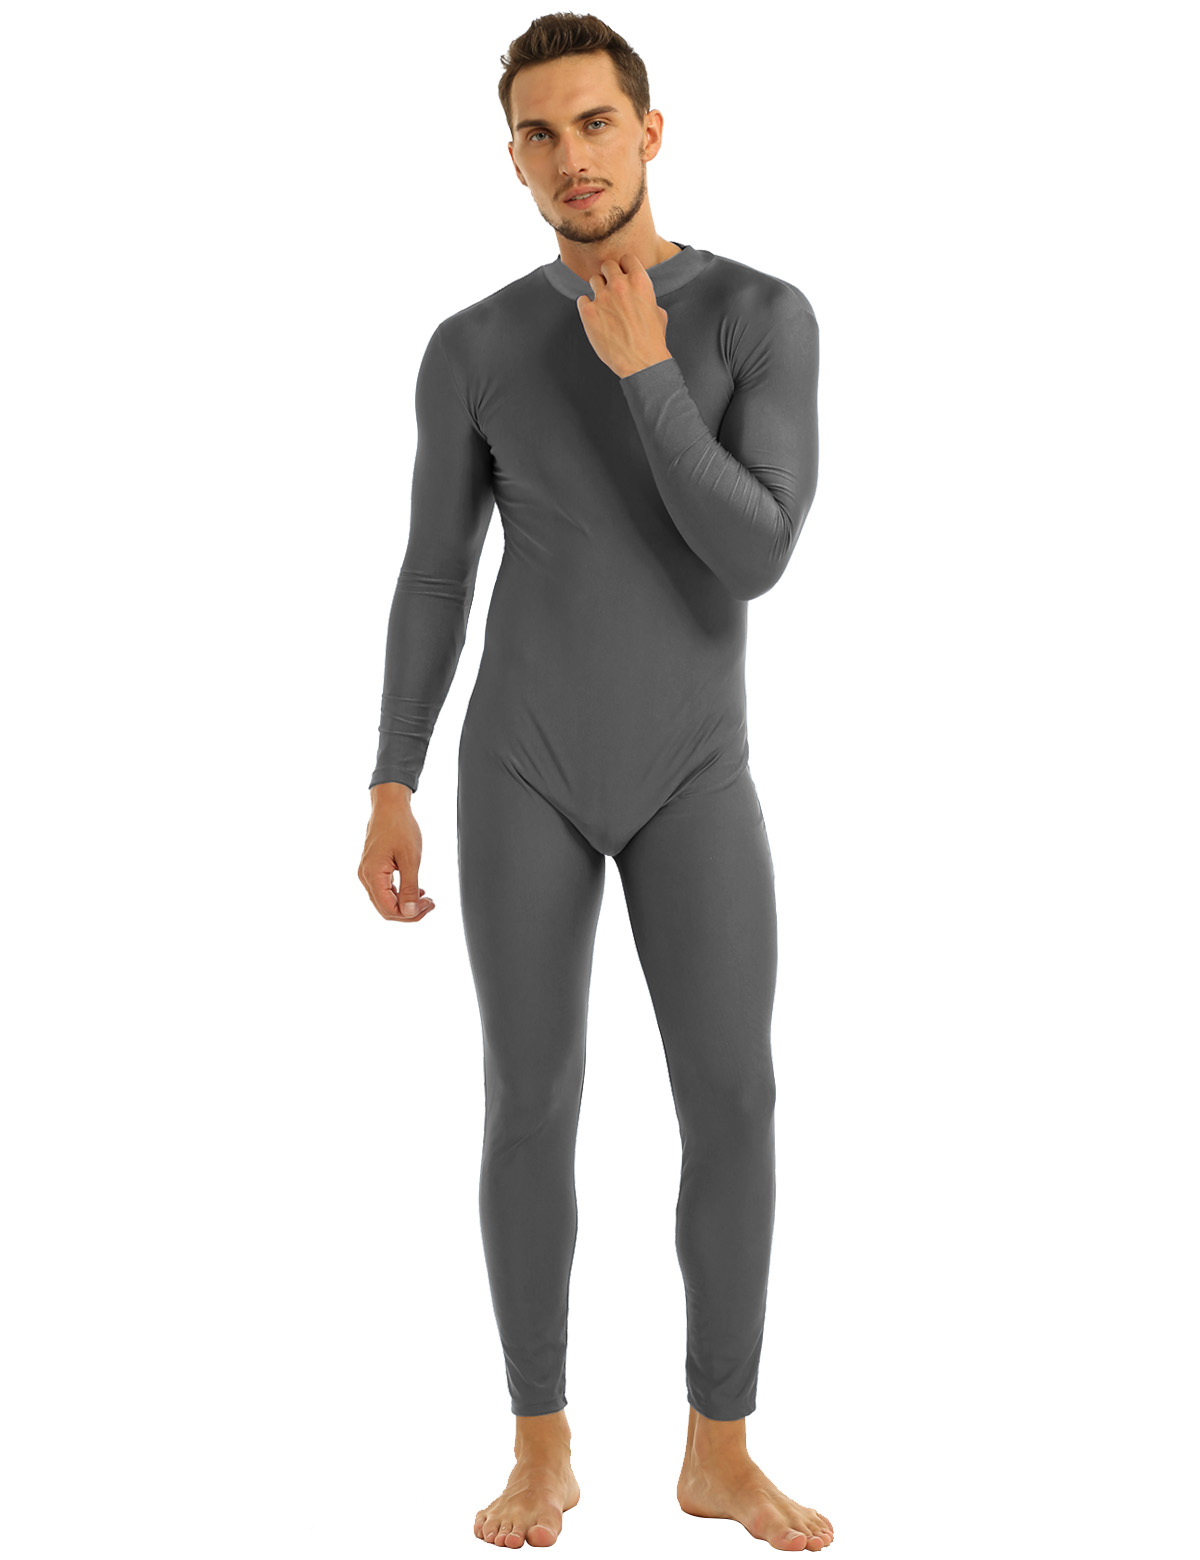 Mens Well Fit One Piece Leotards Long Sleeves Skinny Full-body Catsuit Adult Lycra Dancewear Bodysuit Gymnastics Workout Unitard 31